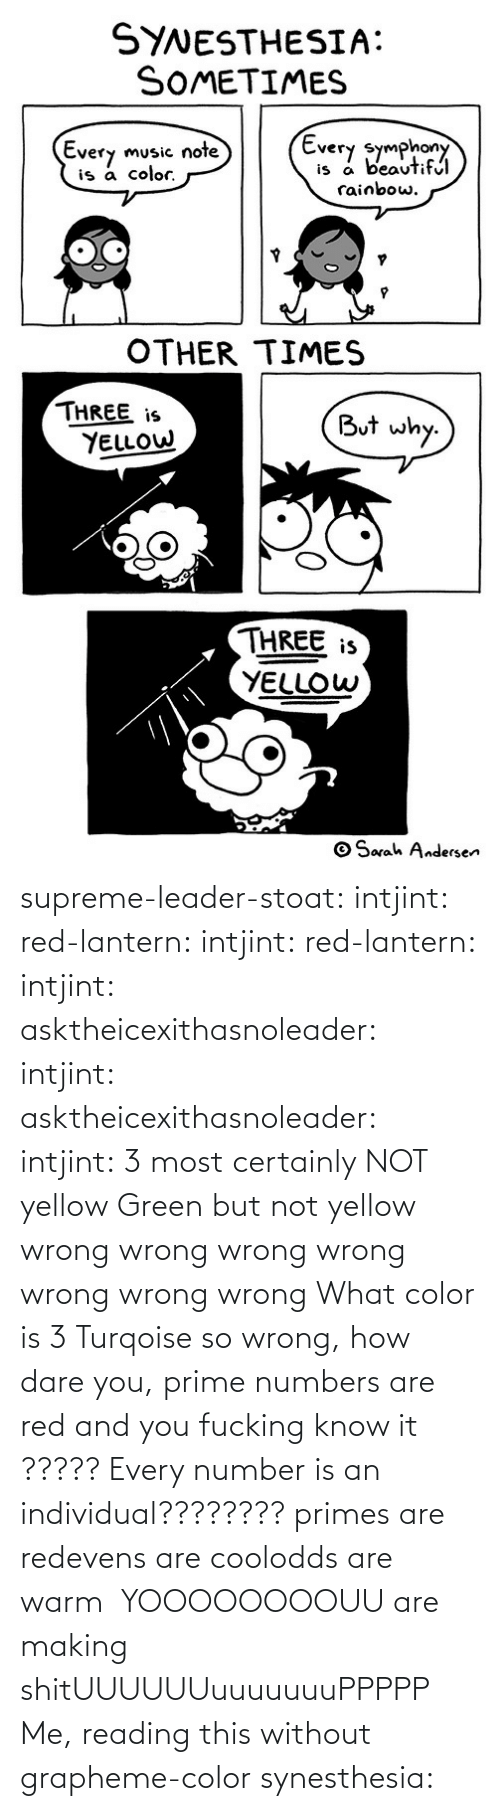 You Fucking: supreme-leader-stoat: intjint:  red-lantern:  intjint:  red-lantern:  intjint:  asktheicexithasnoleader:  intjint:   asktheicexithasnoleader:  intjint:  3 most certainly NOT yellow   Green but not yellow  wrong wrong wrong wrong wrong wrong wrong    What color is 3  Turqoise  so wrong, how dare you, prime numbers are red and you fucking know it   ????? Every number is an individual????????  primes are redevens are coolodds are warm   YOOOOOOOOUU are making shitUUUUUUuuuuuuuPPPPP  Me, reading this without grapheme-color synesthesia: